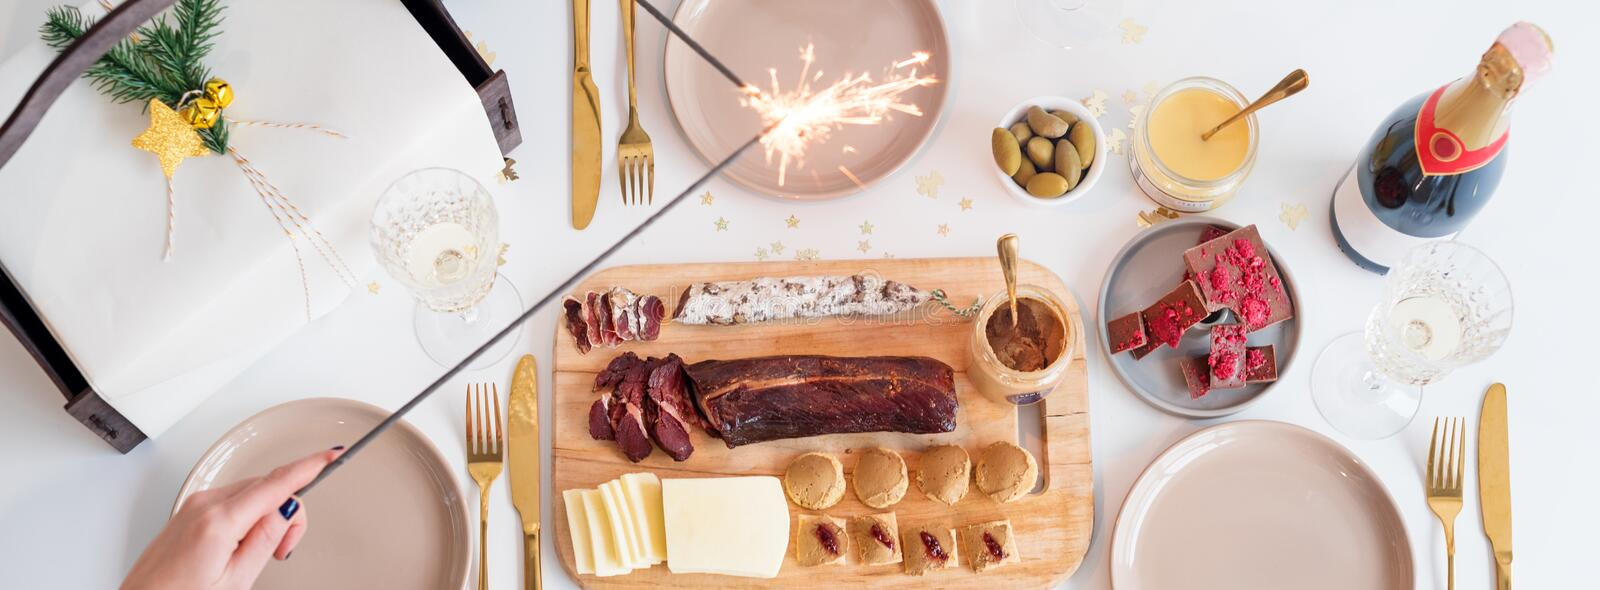 Christmas Family Dinner Table Concept. Christmas feast. Holiday Gold place setting, overhead shoot. Christmas Family Dinner Table Concept. Christmas feast royalty free stock image